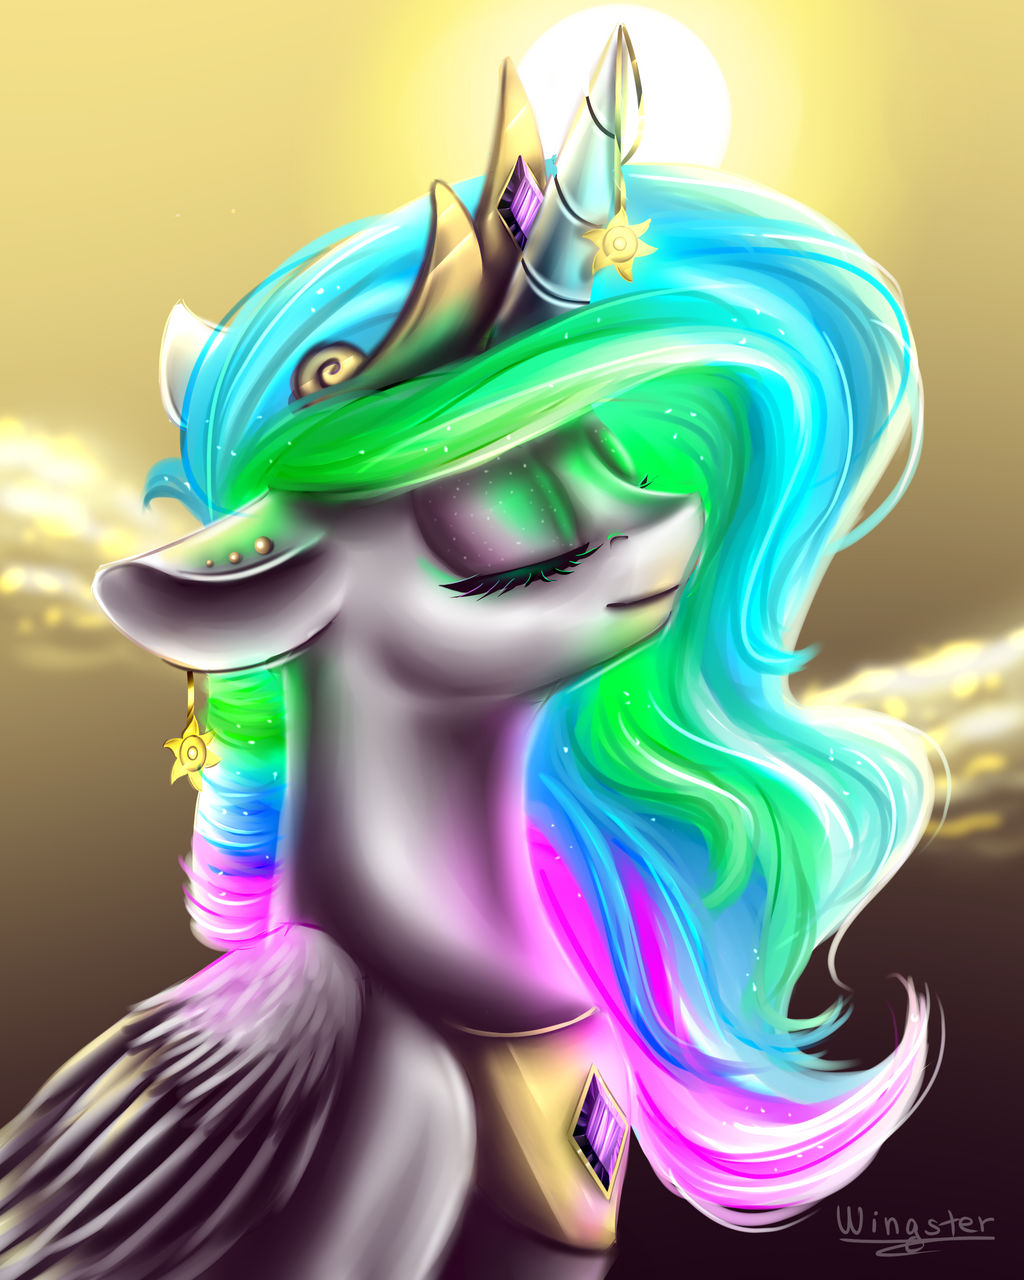 mlp___princess_celestia_by_wingsterwin_d